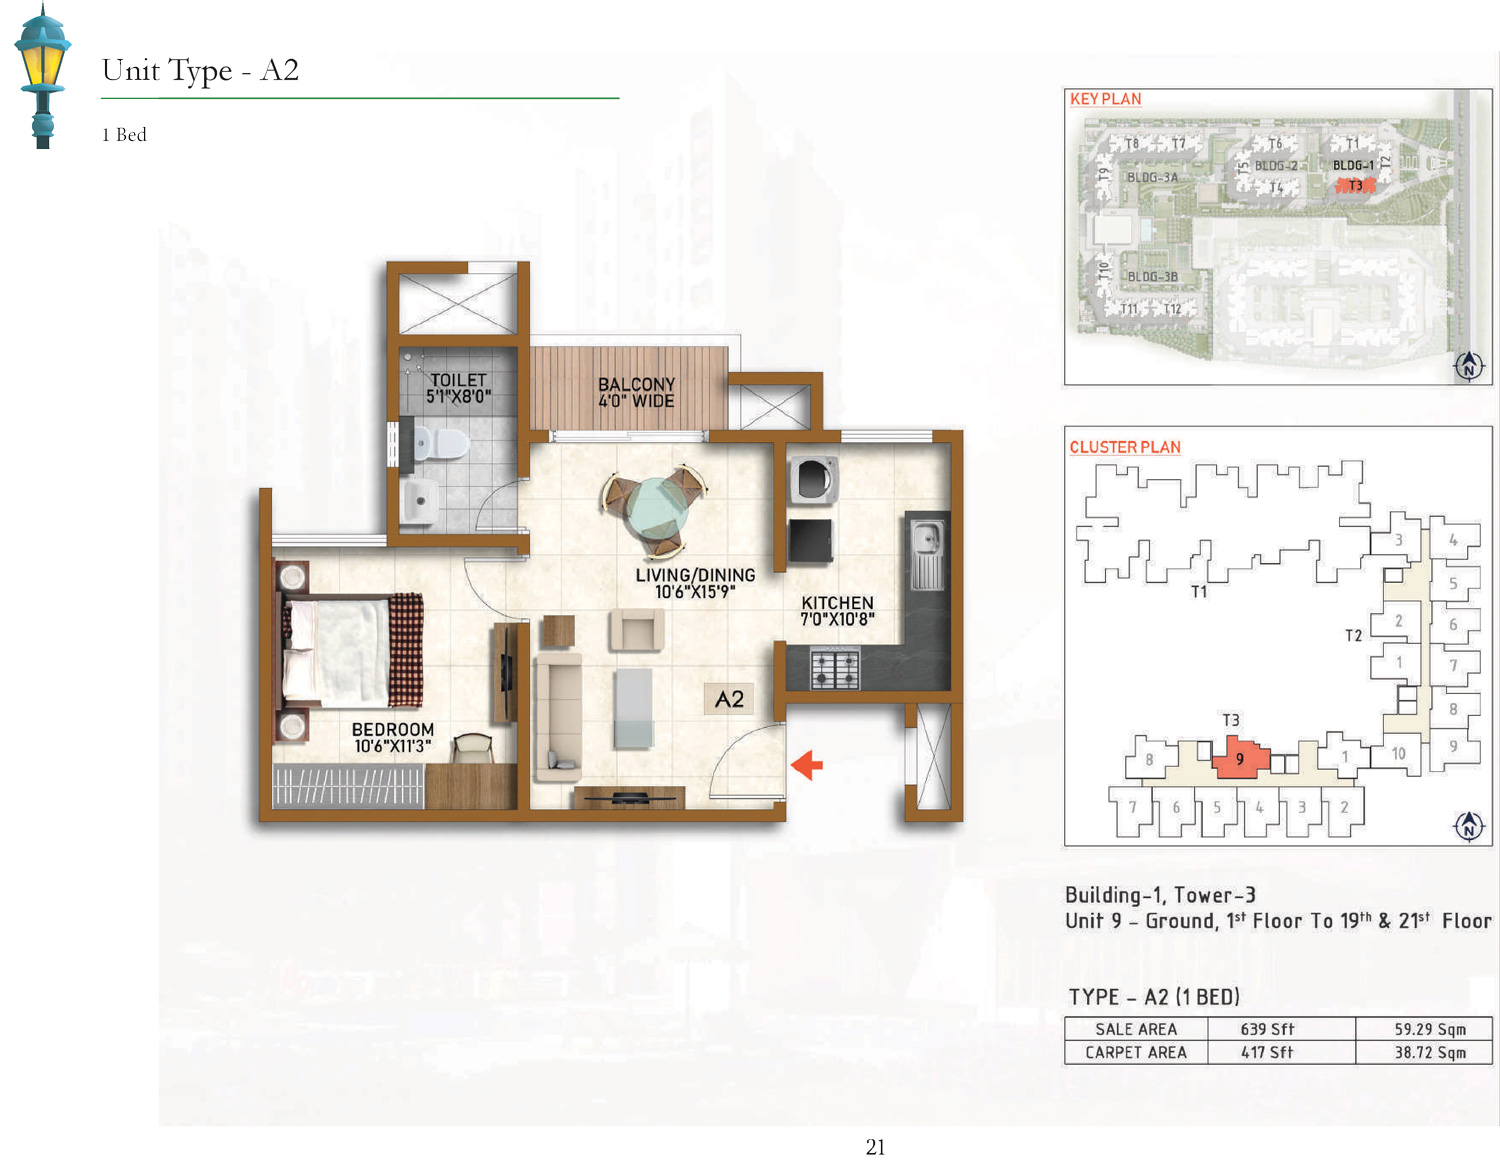 Type A2 - 639 Sq Ft